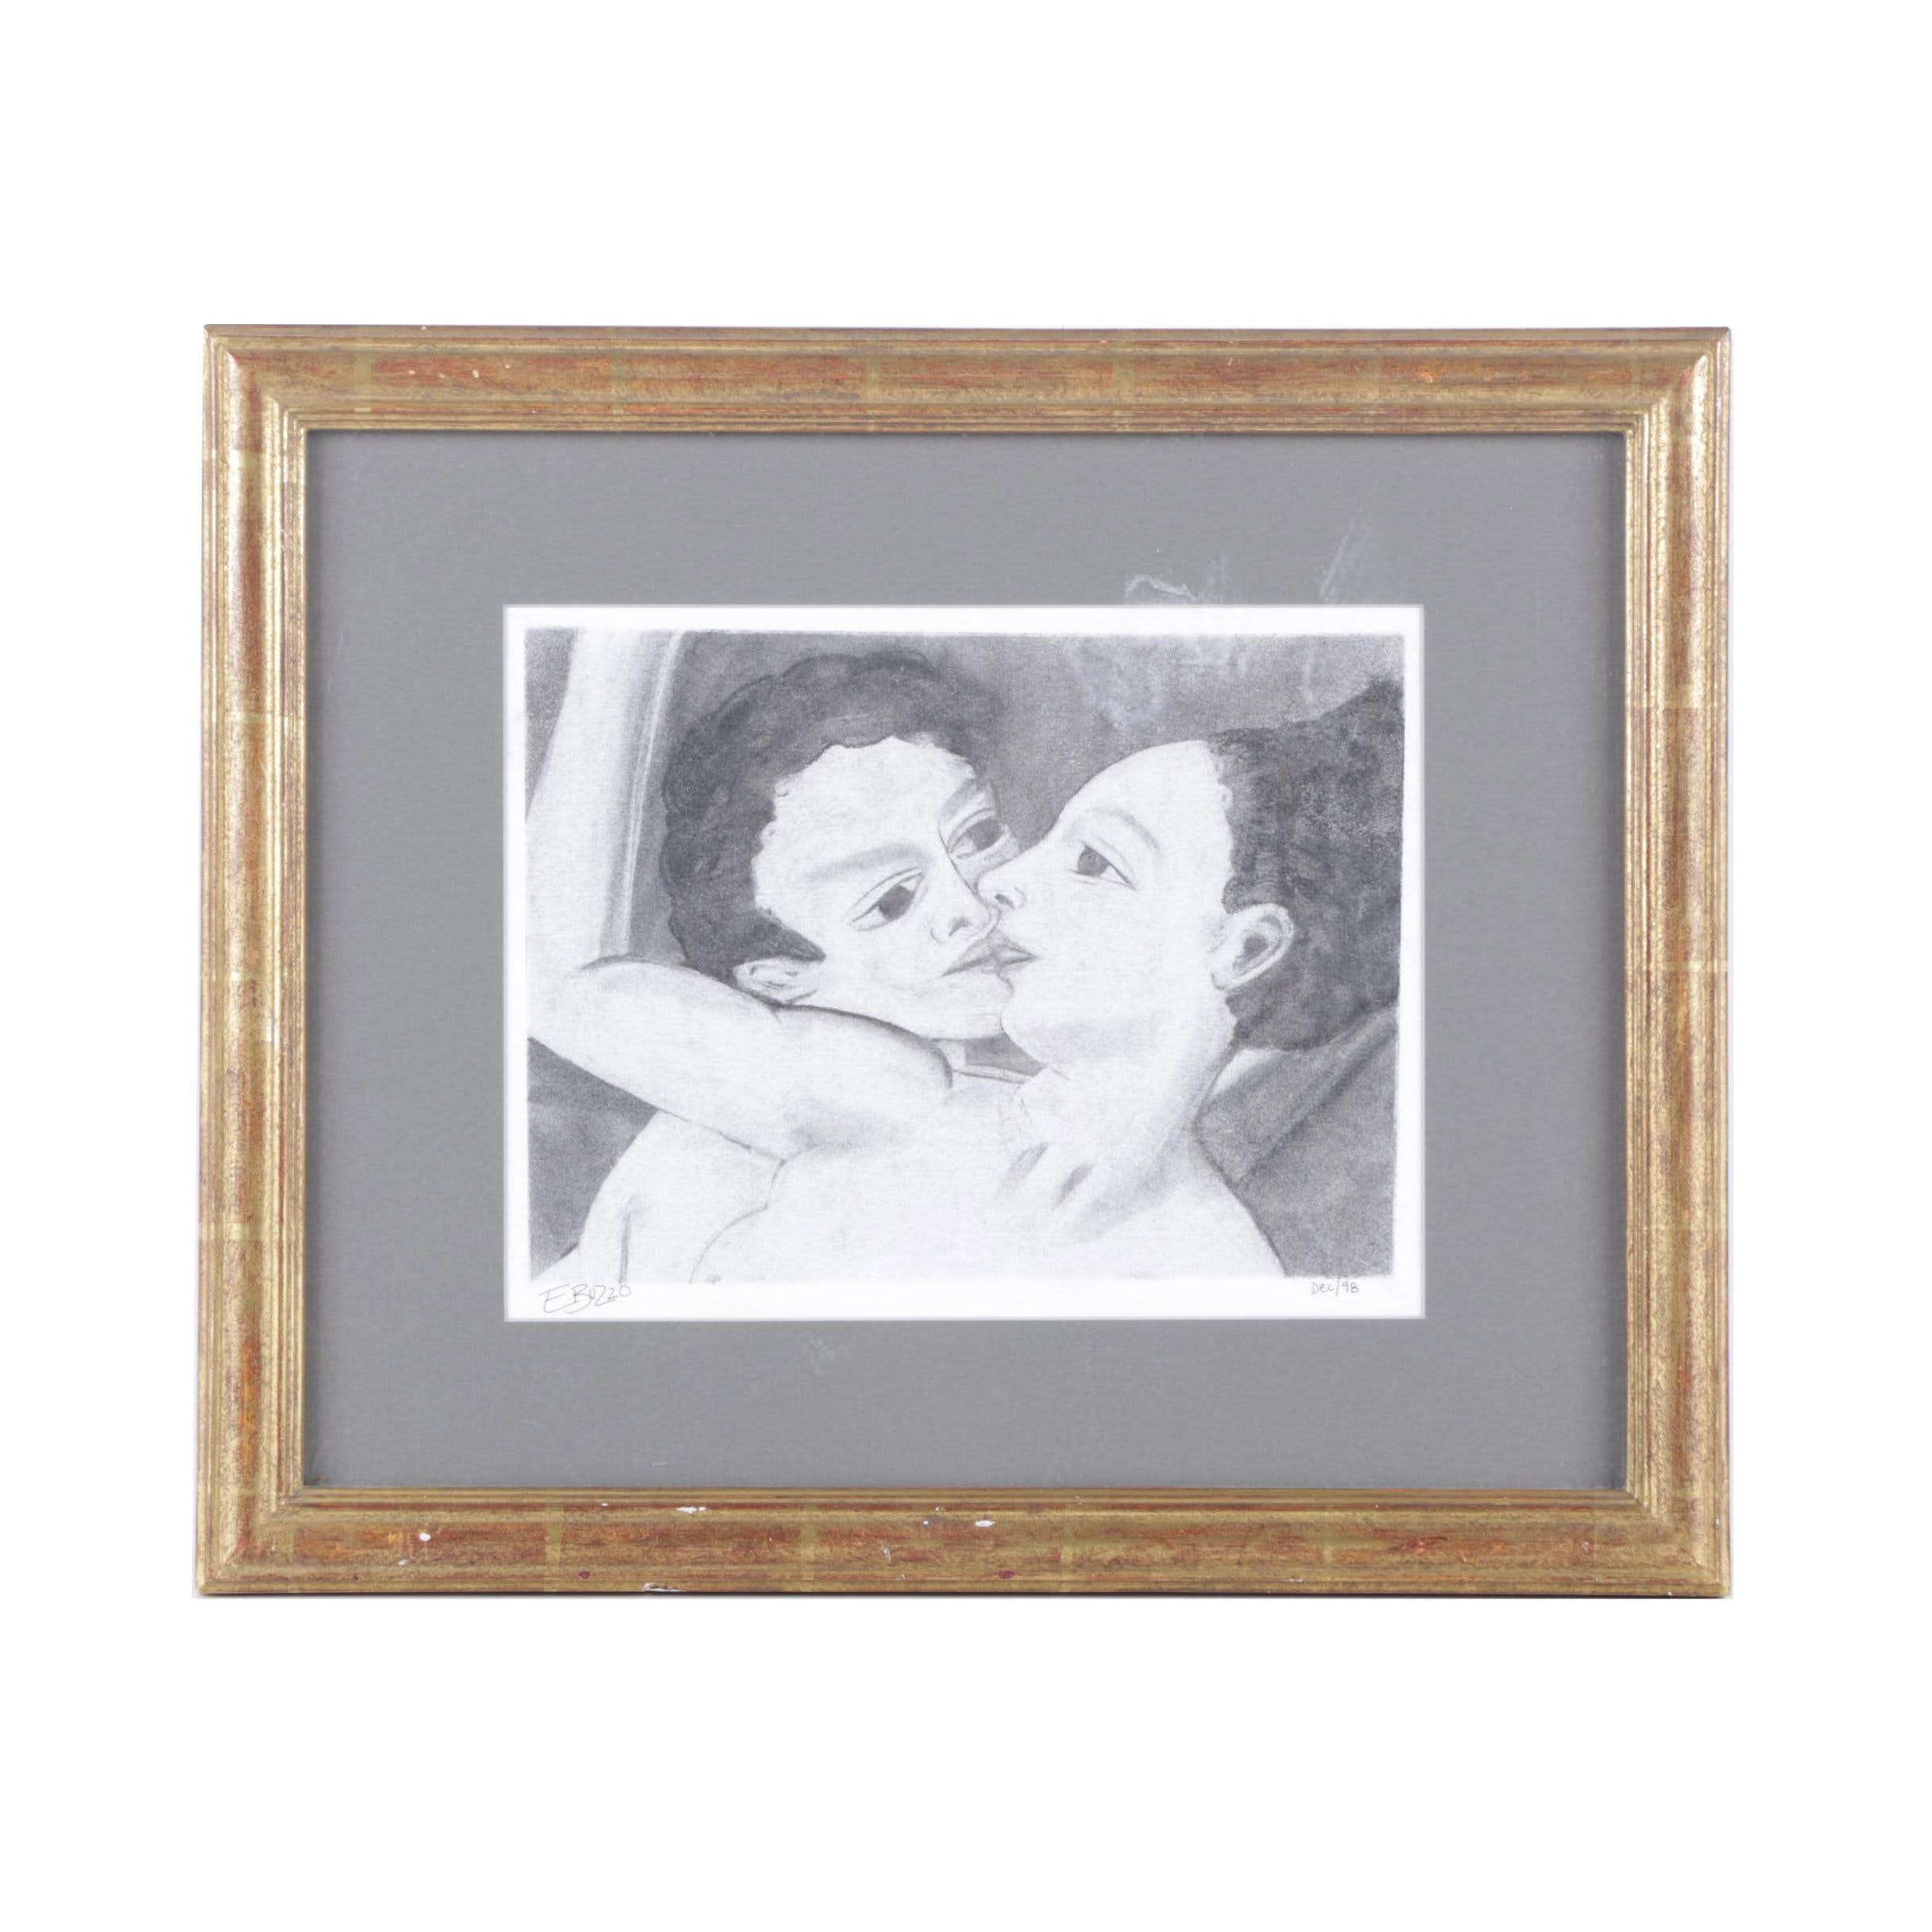 E. Buzzo Lithograph on Paper of Embracing Couple